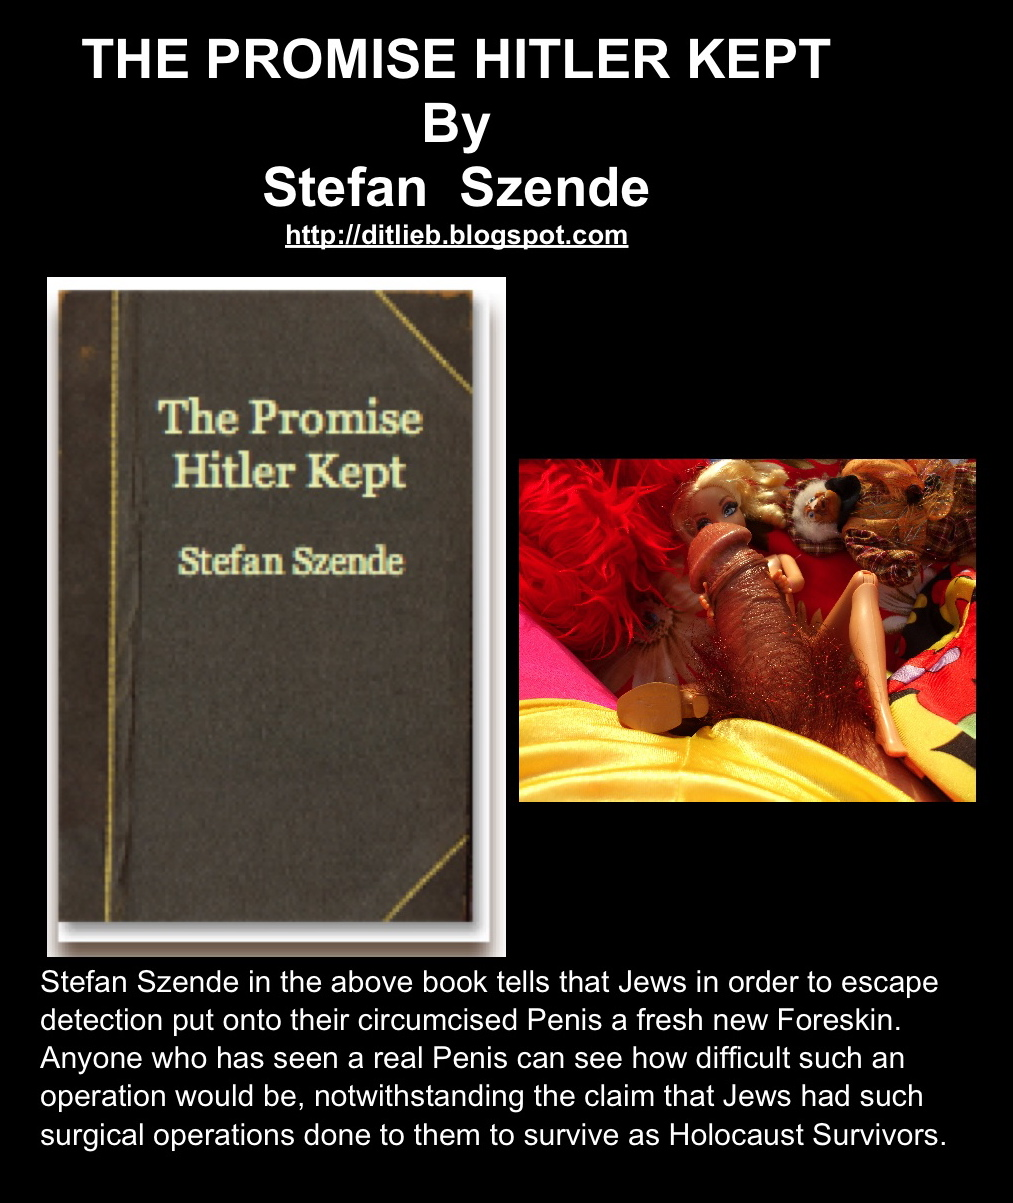 The Great Stefan Szende